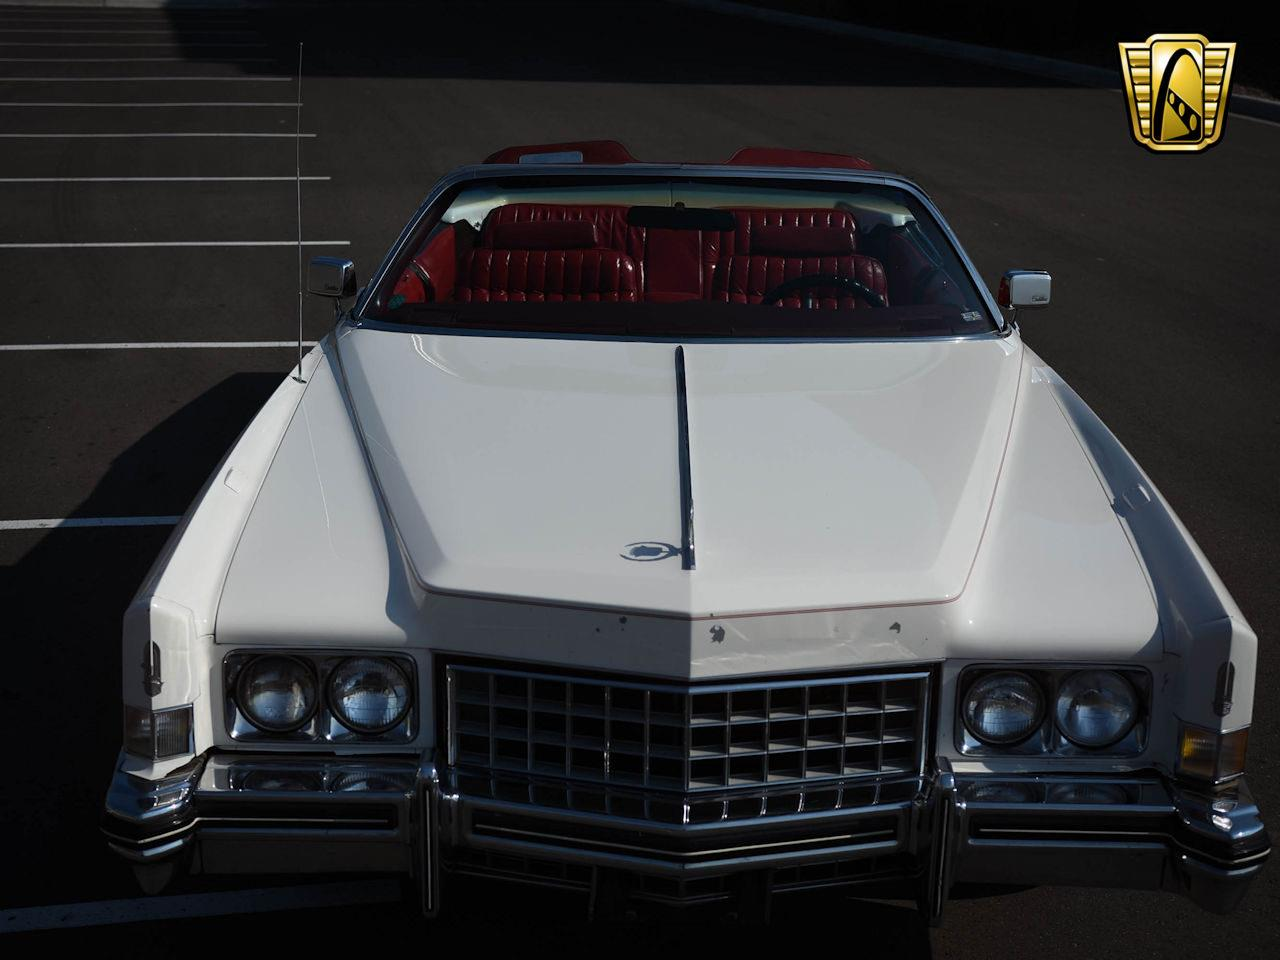 Large Picture of '73 Cadillac Eldorado located in O'Fallon Illinois - $14,595.00 Offered by Gateway Classic Cars - Denver - LT70